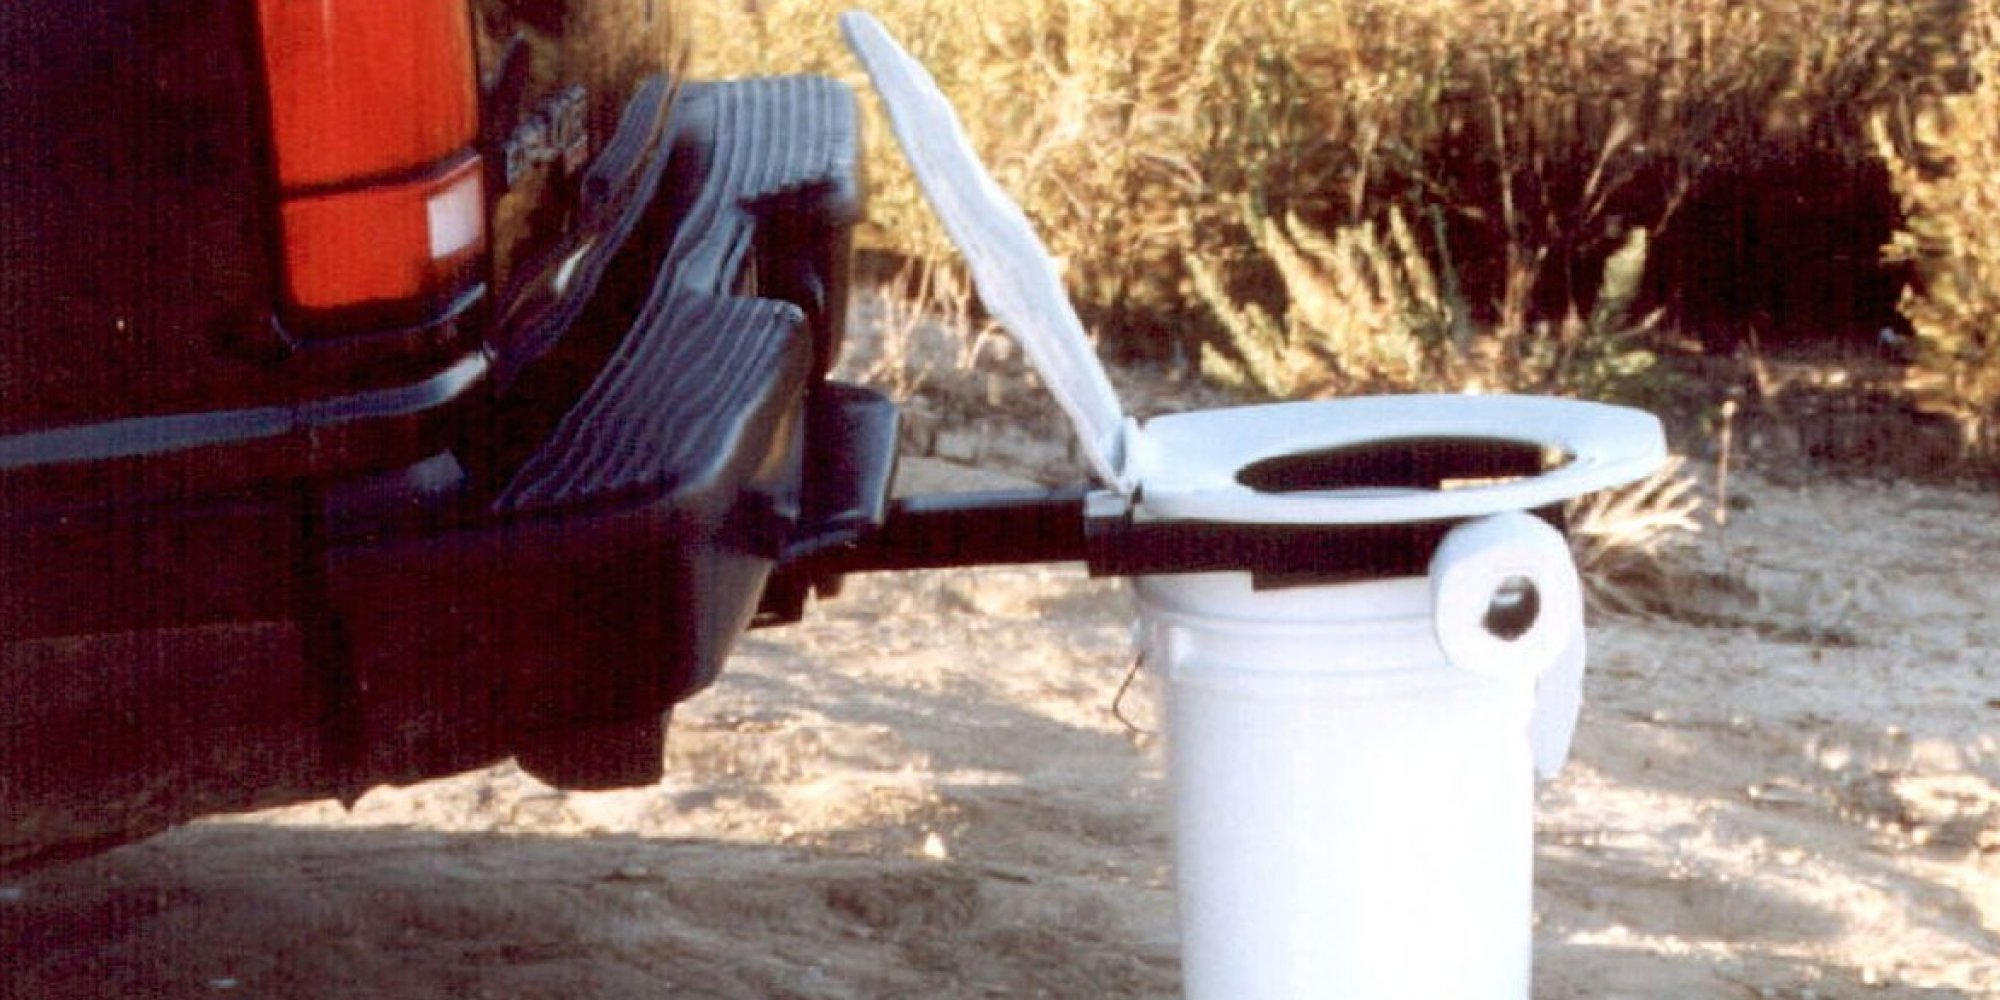 Bumper Dumper Toilet Helps People Go While On The